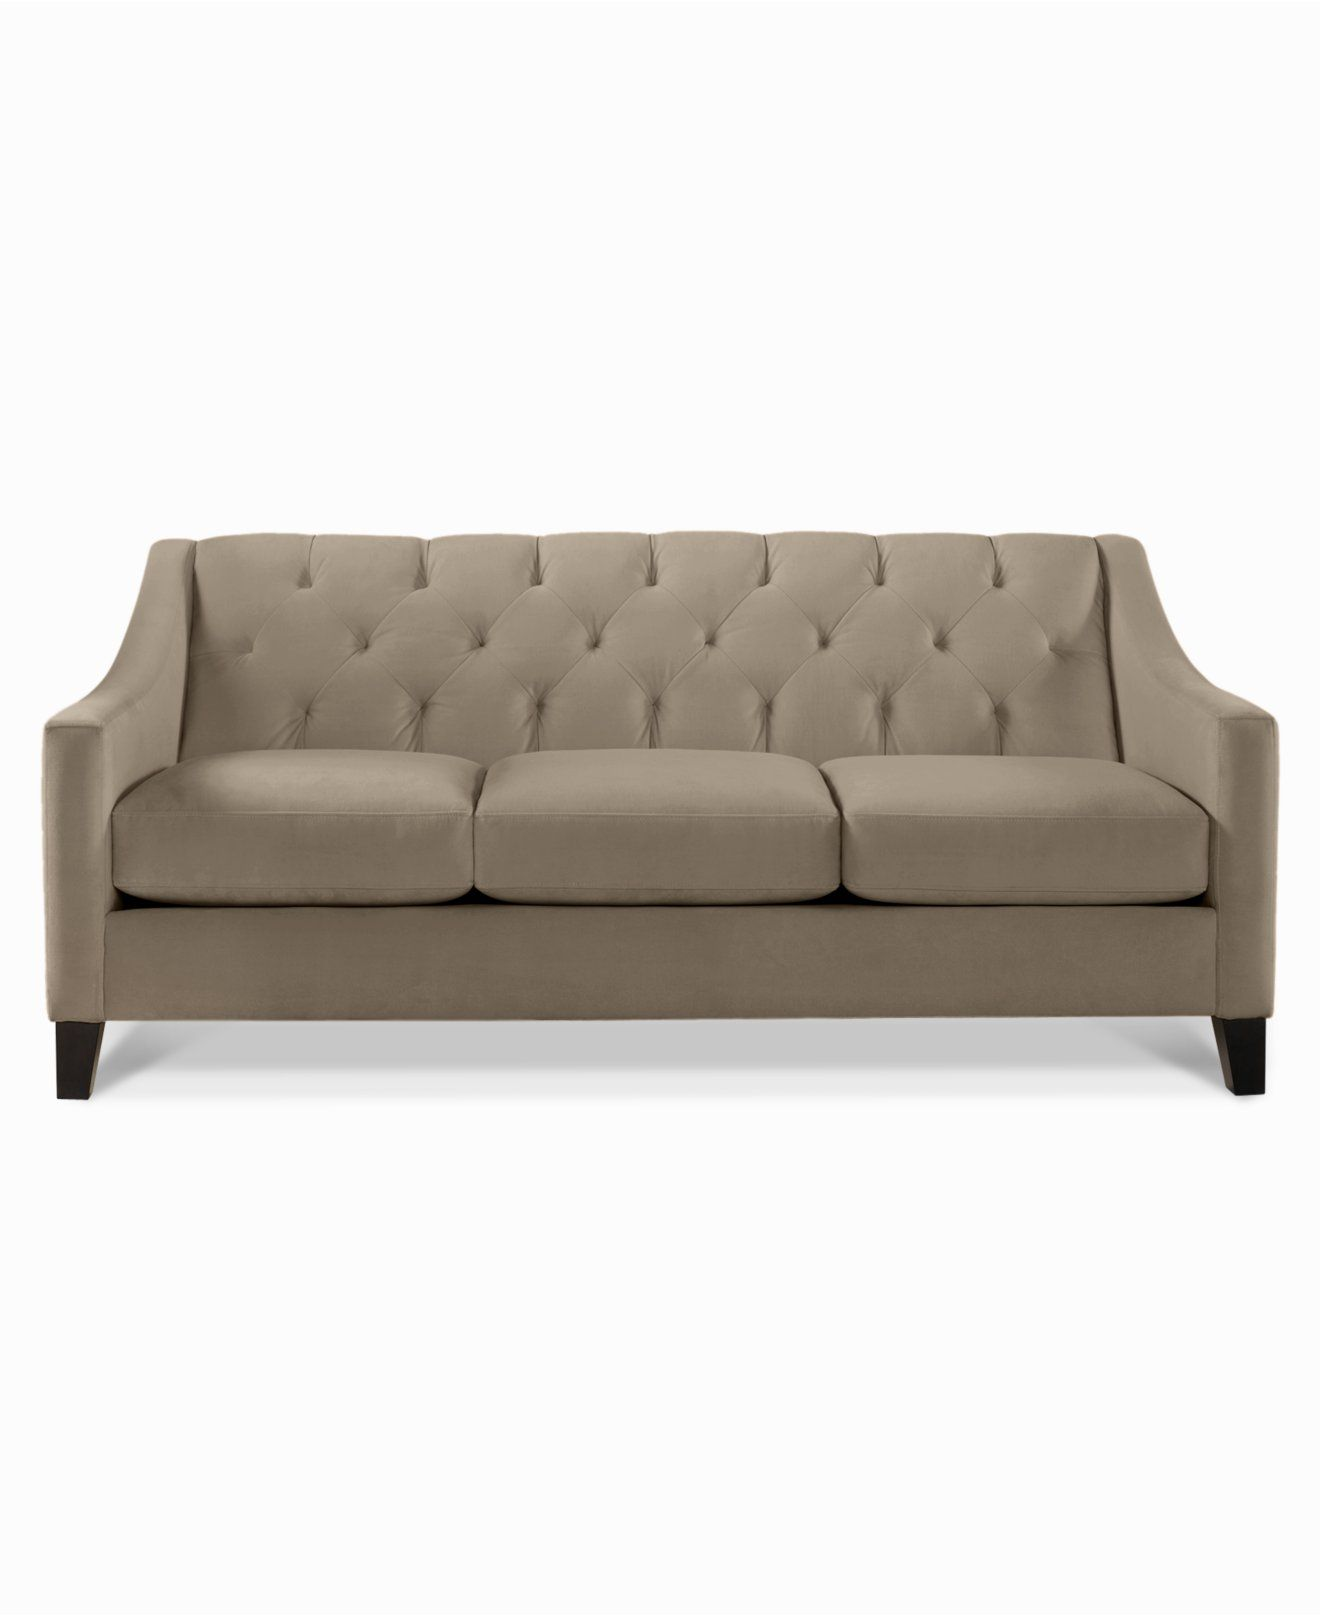 Chloe Velvet Tufted Sofa   Couches U0026 Sofas   Furniture   Macyu0027s // Granite  $599